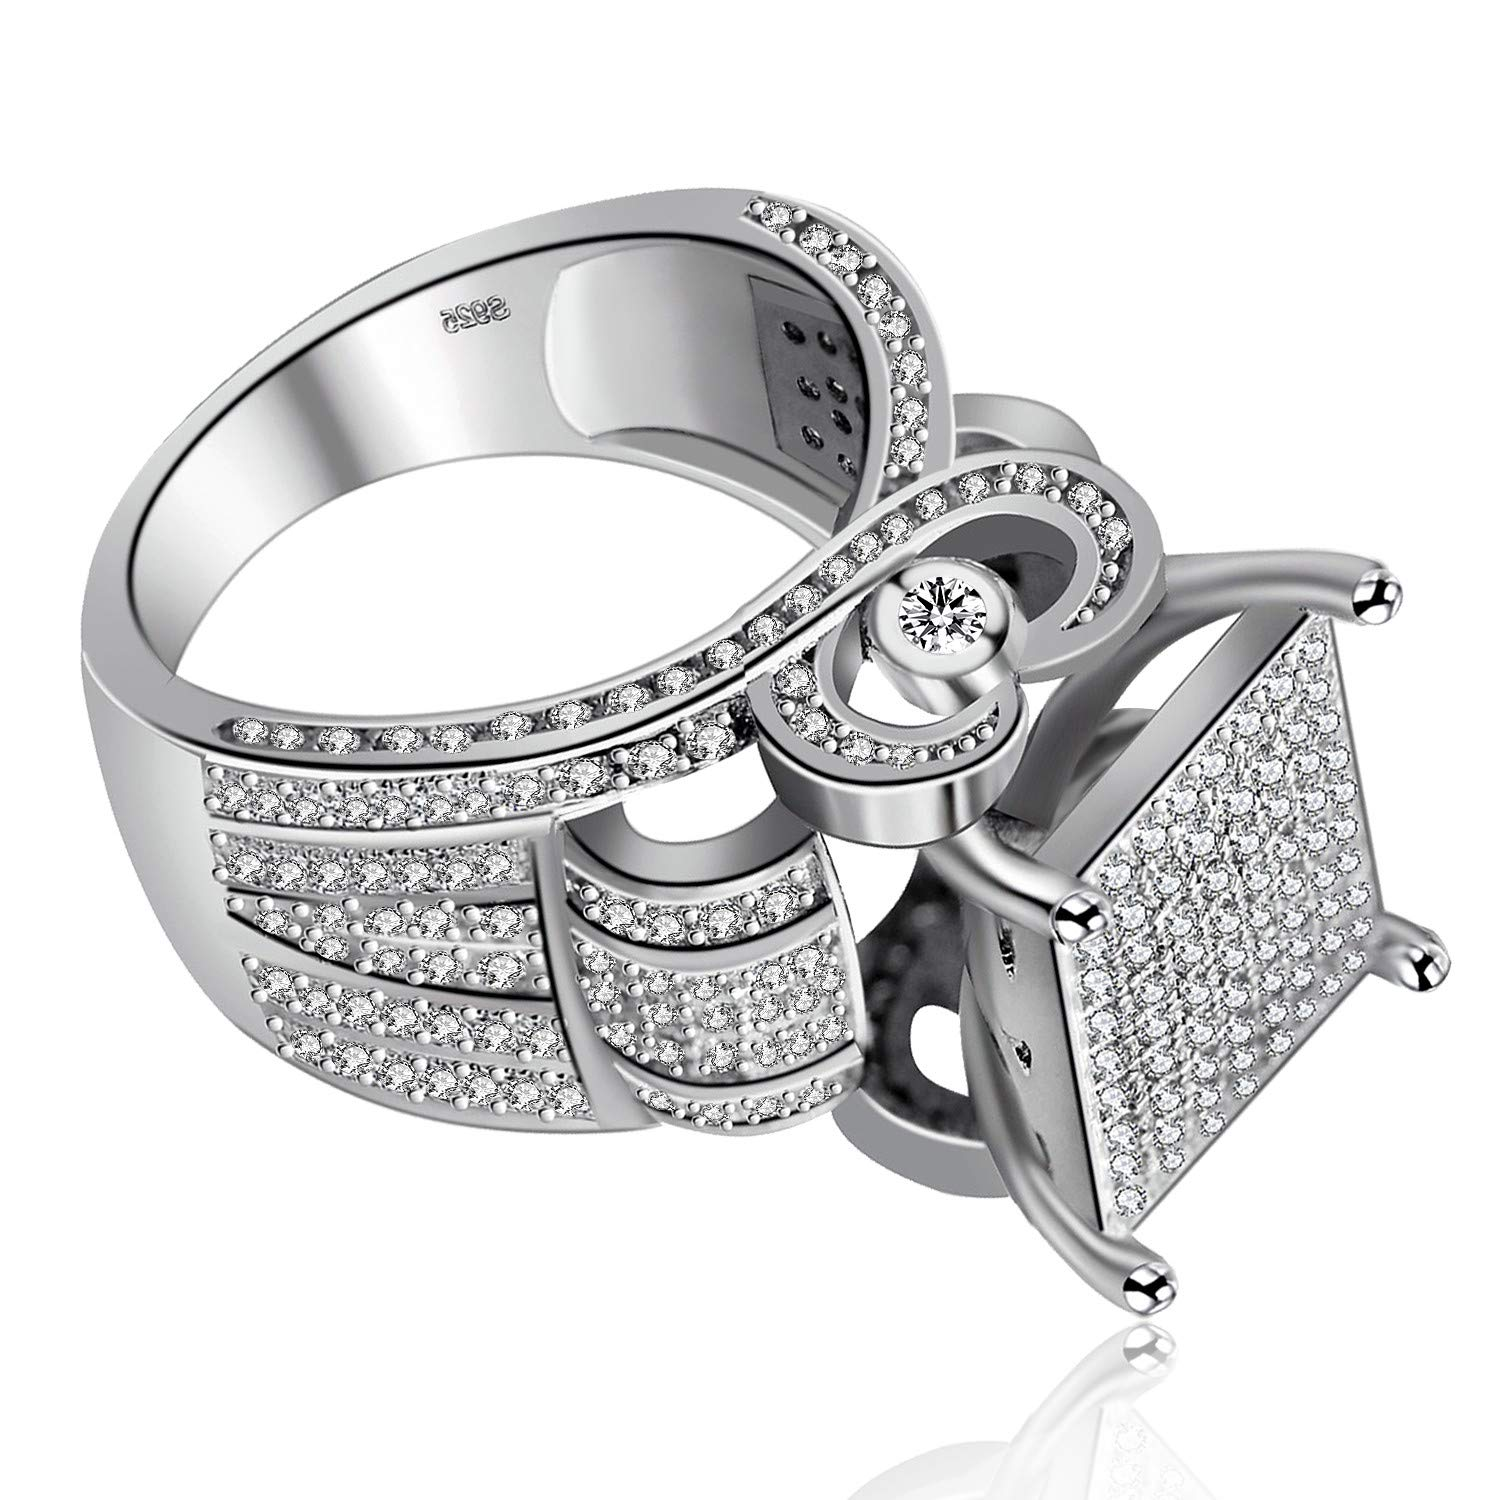 RA0221 Bridal Fashion Jewelry Stores Uloveido Womens 0.4 Wide Square Cluster Engagement Love Heart Architecture Ring Platinum Plated Size 6 7 8 9 10 11